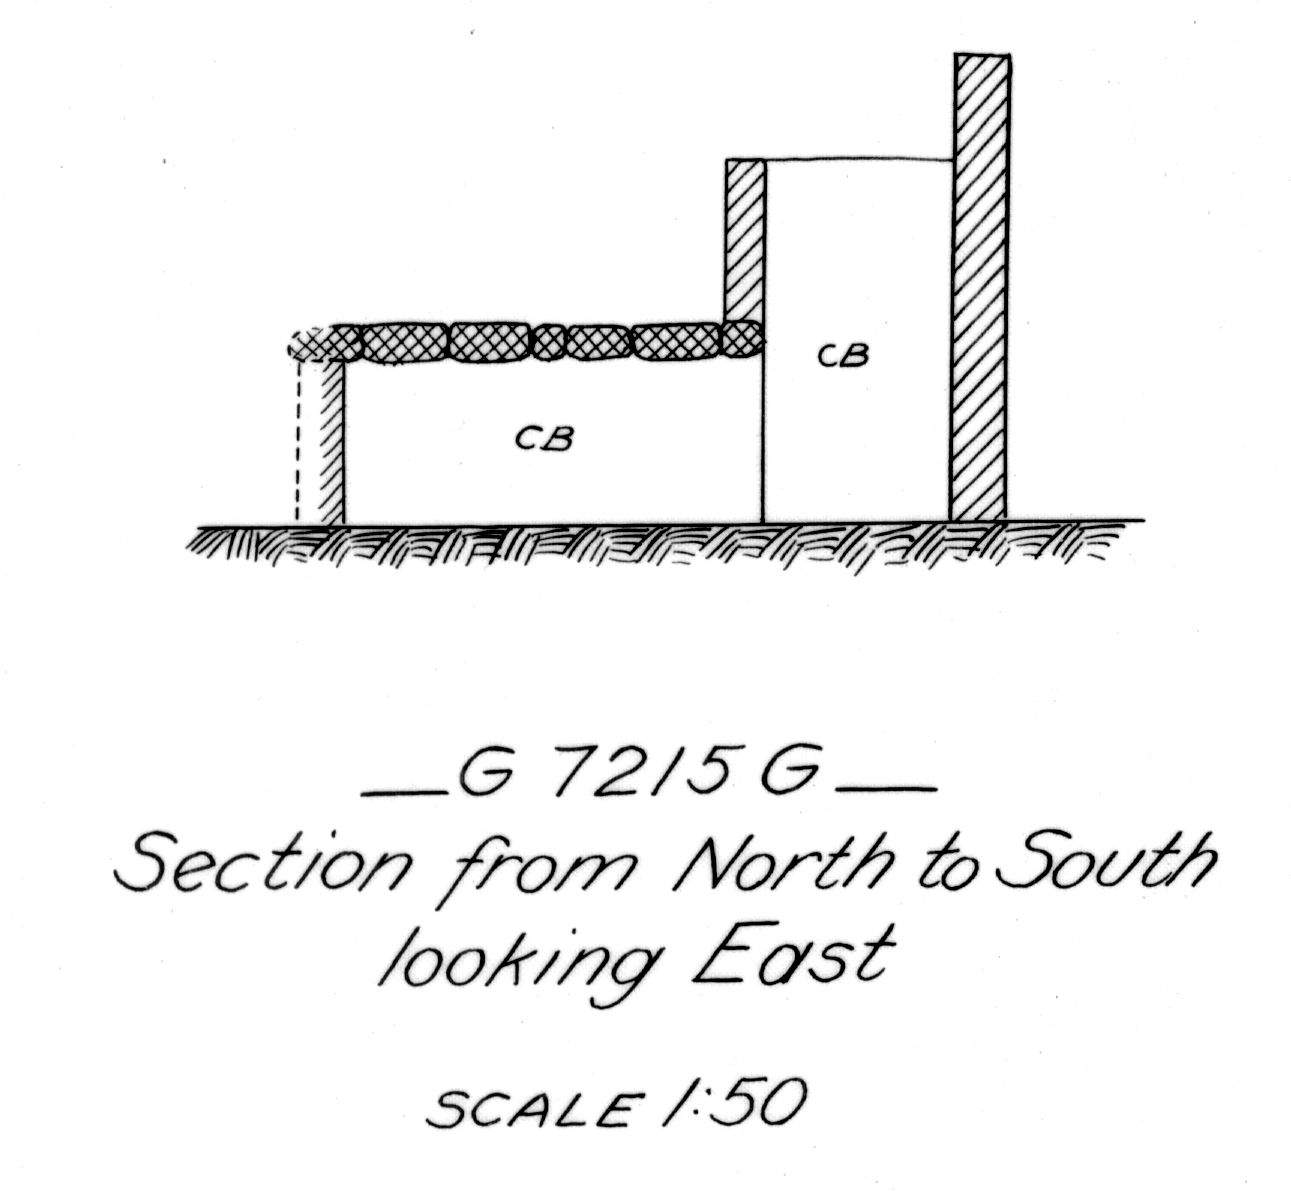 Maps and plans: G 7215, Shaft G